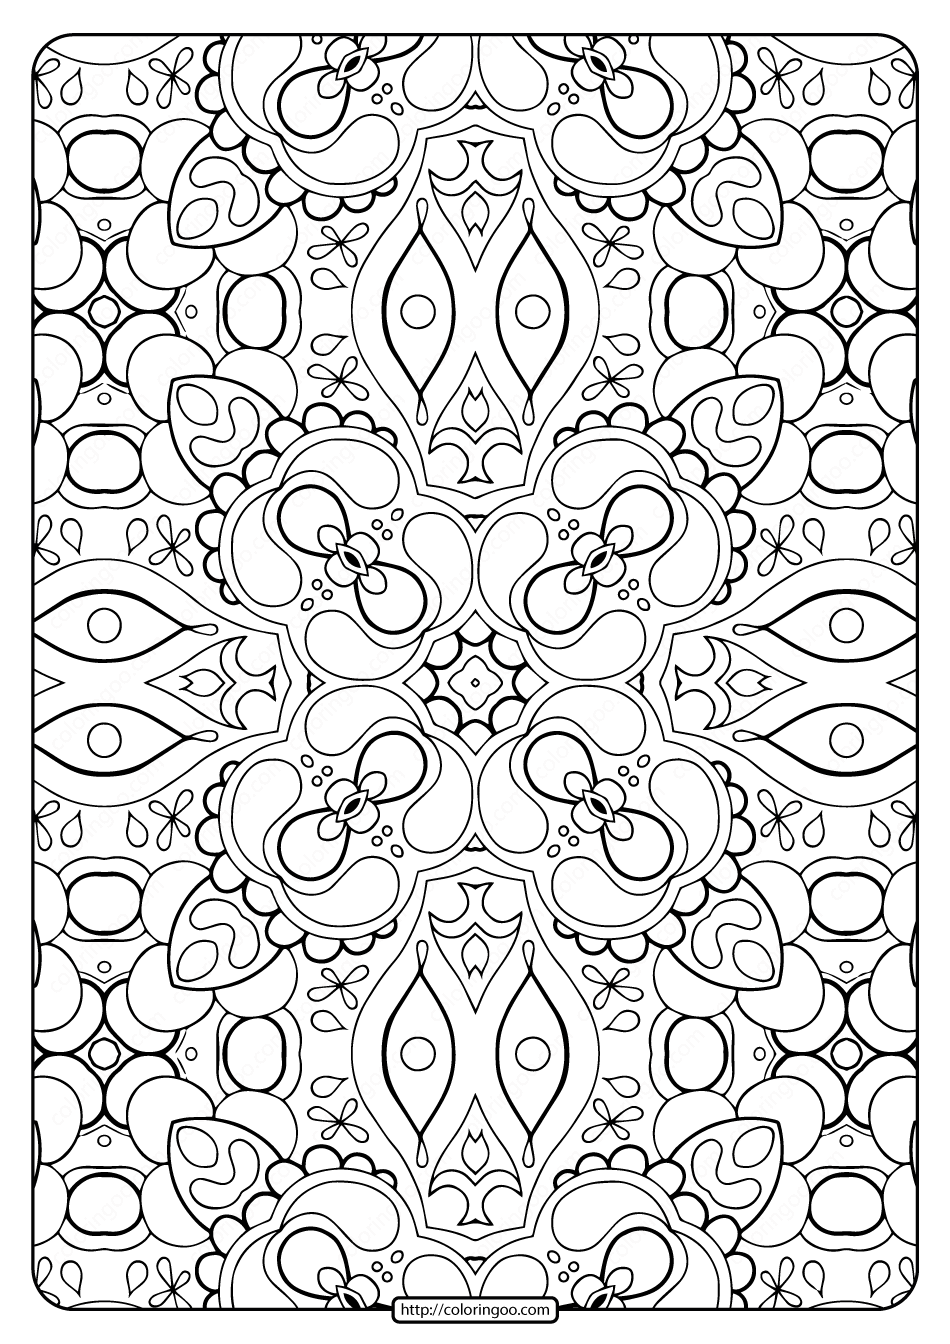 coloring free 10 toothy adult coloring pages printable off the cusp coloring free